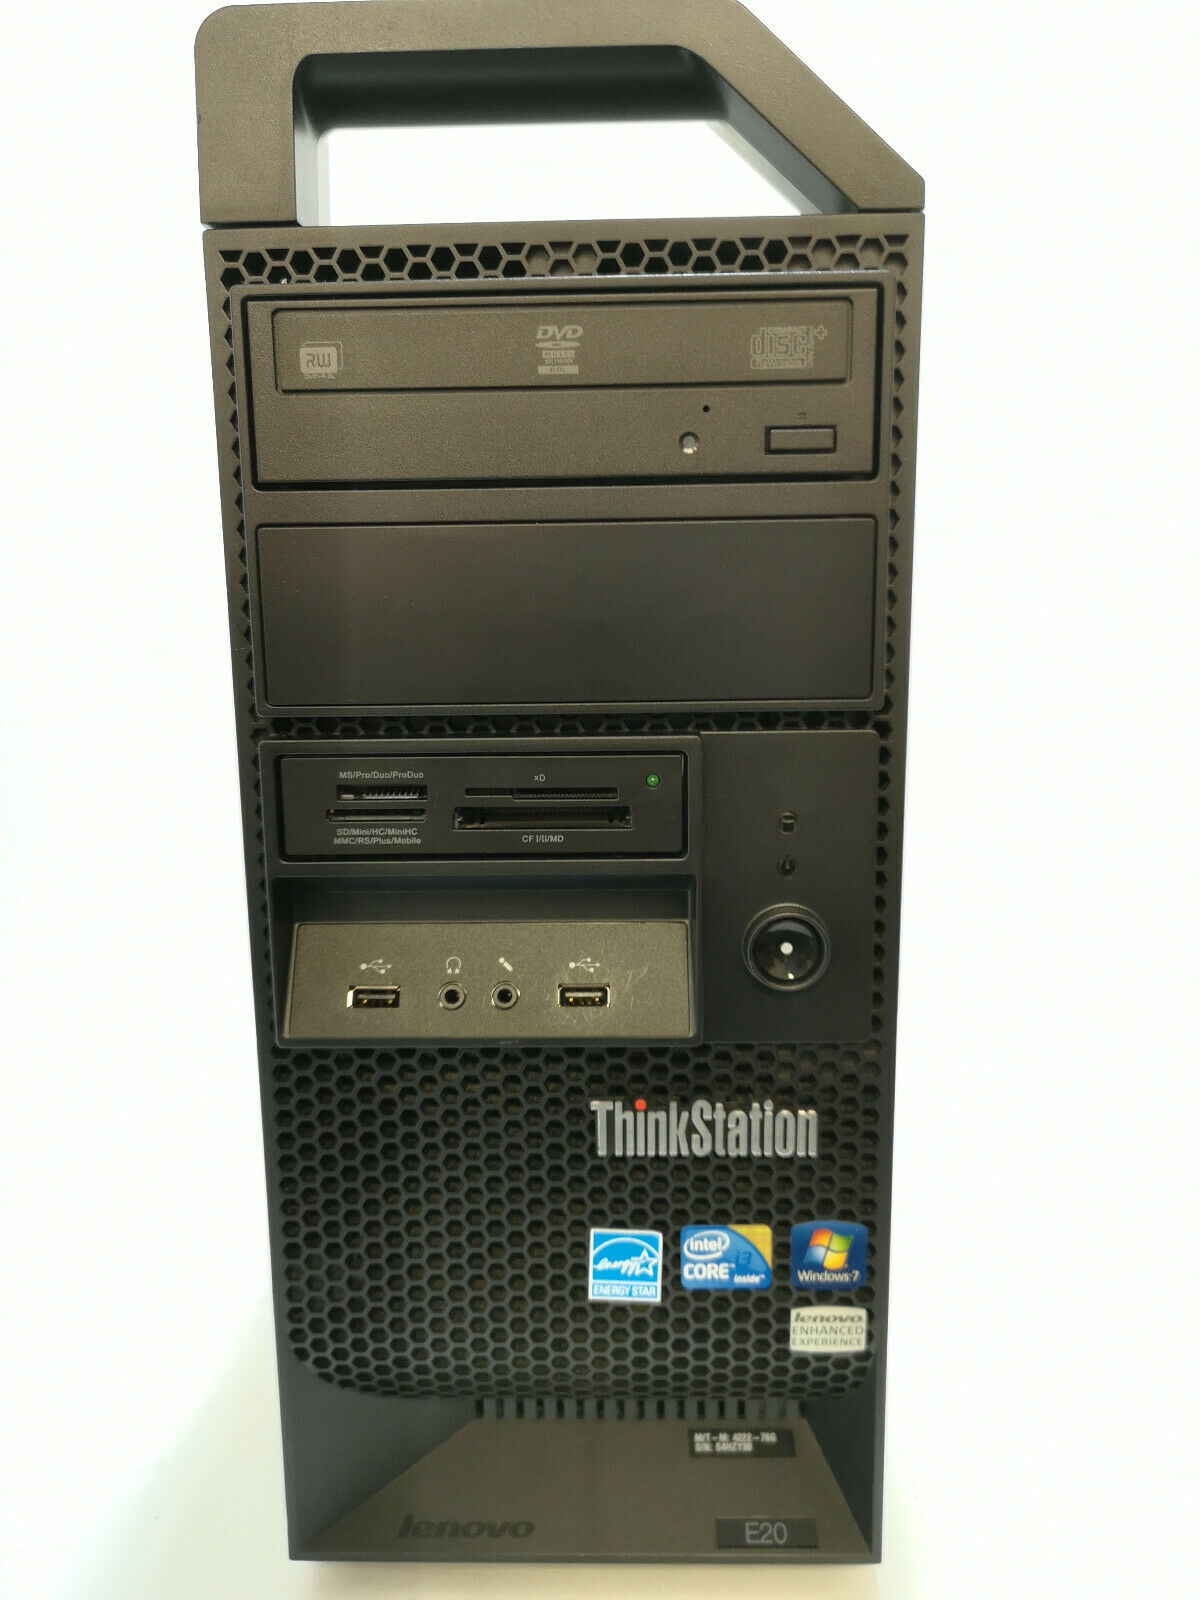 Lenovo ThinkStation E20 No 2